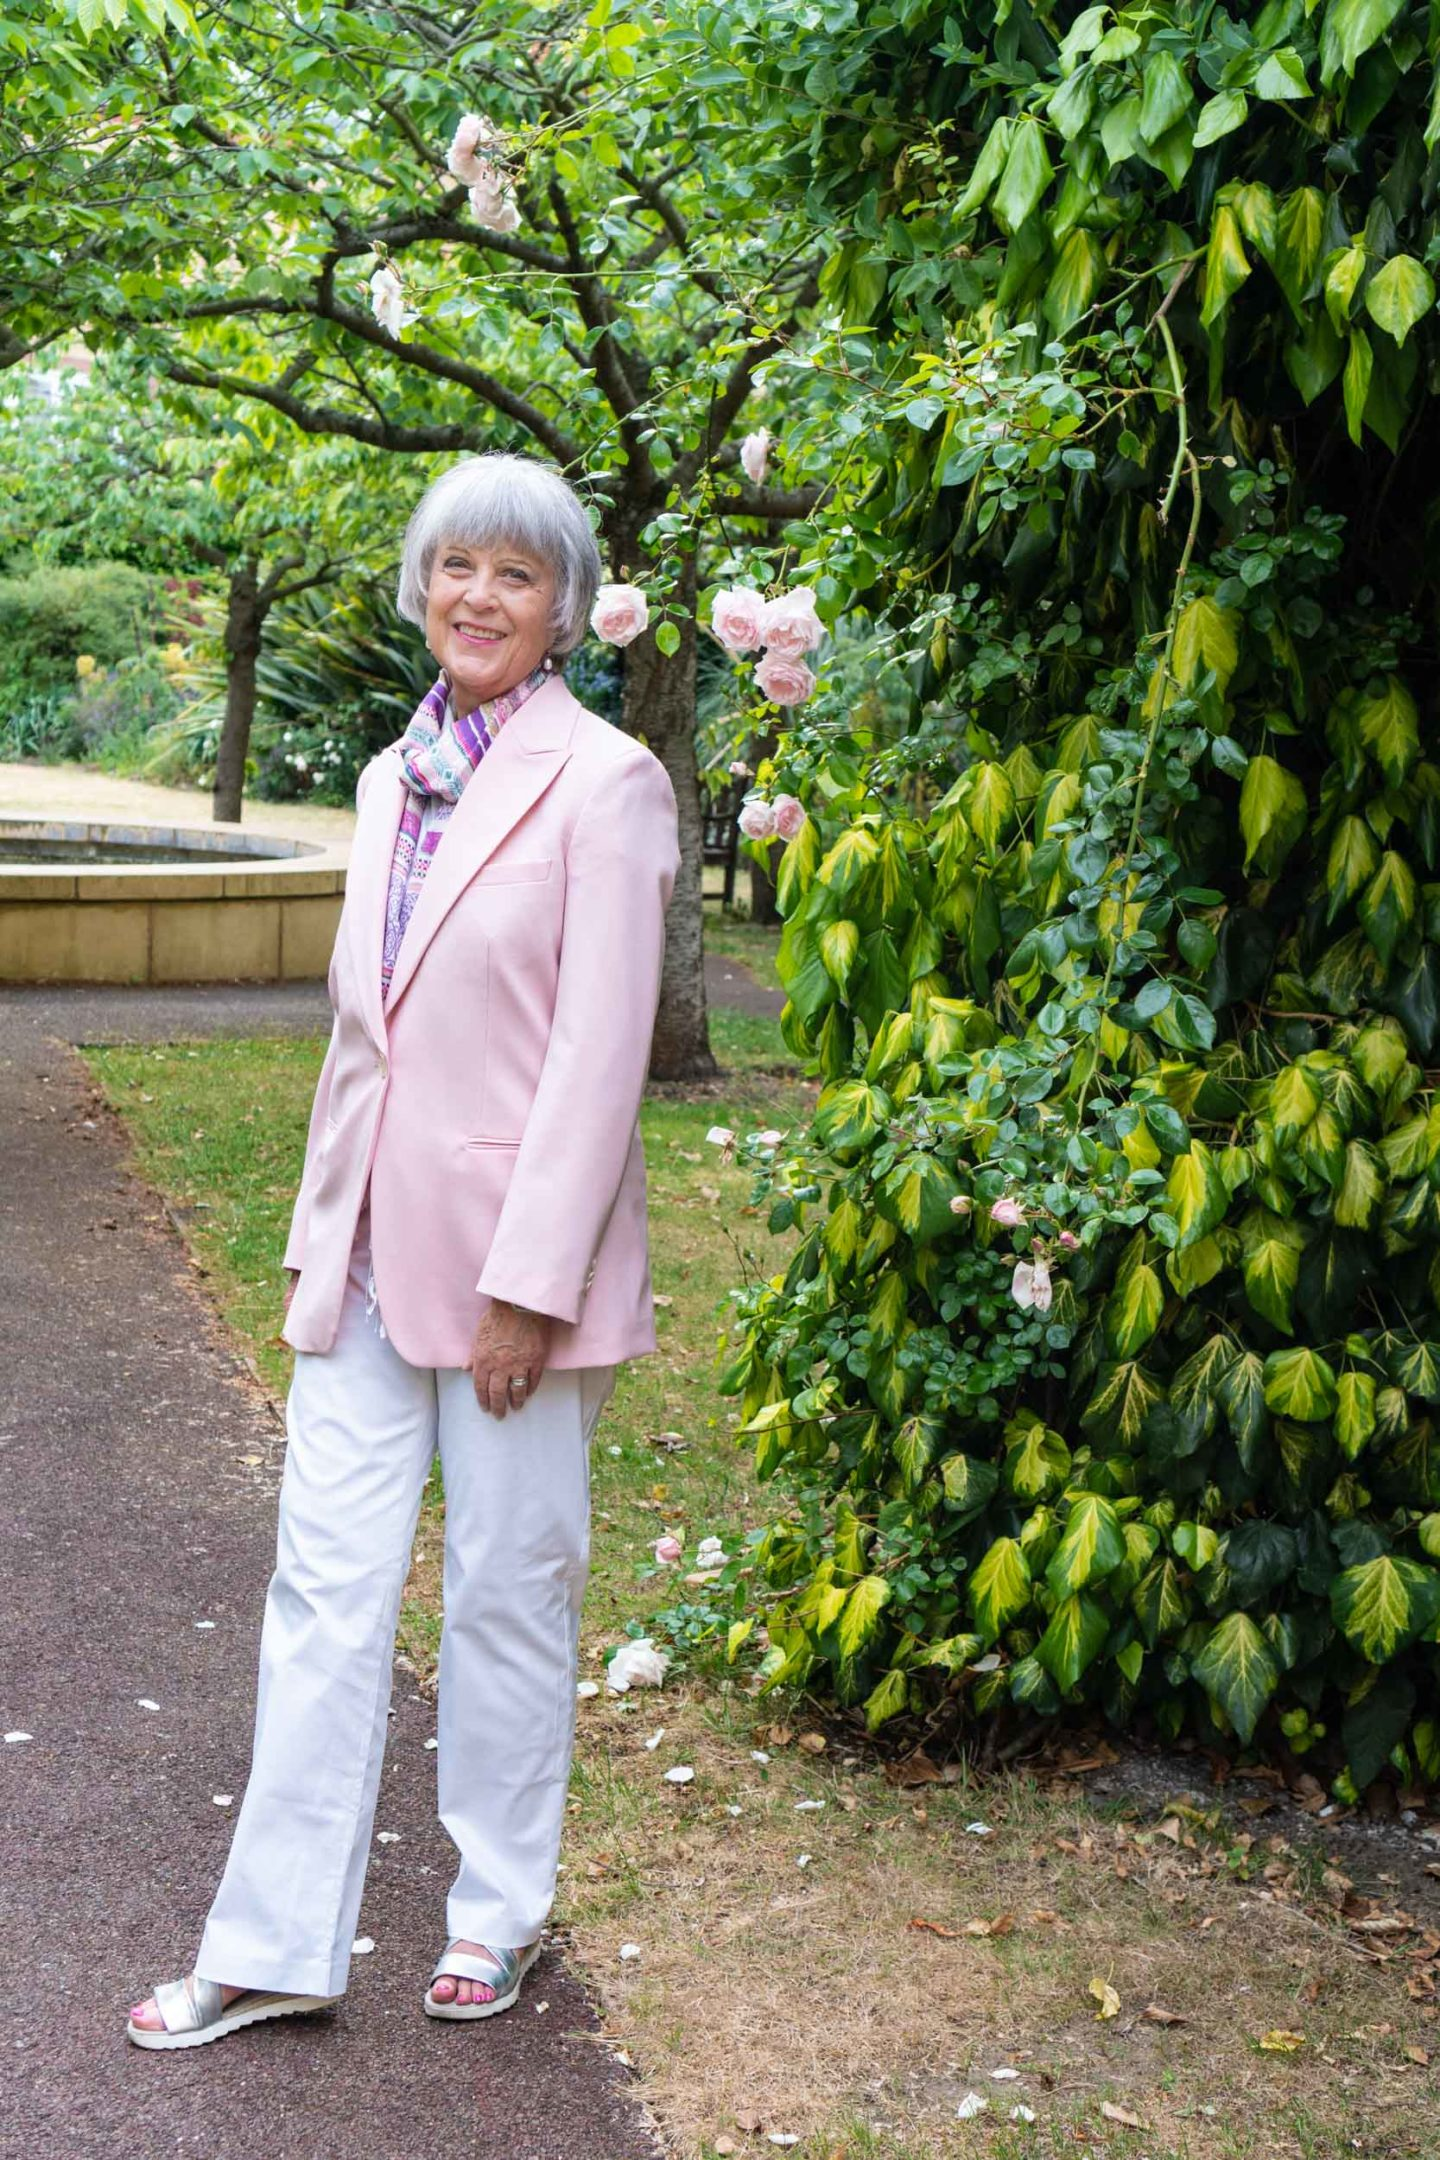 Pale pink jacket and white trousers